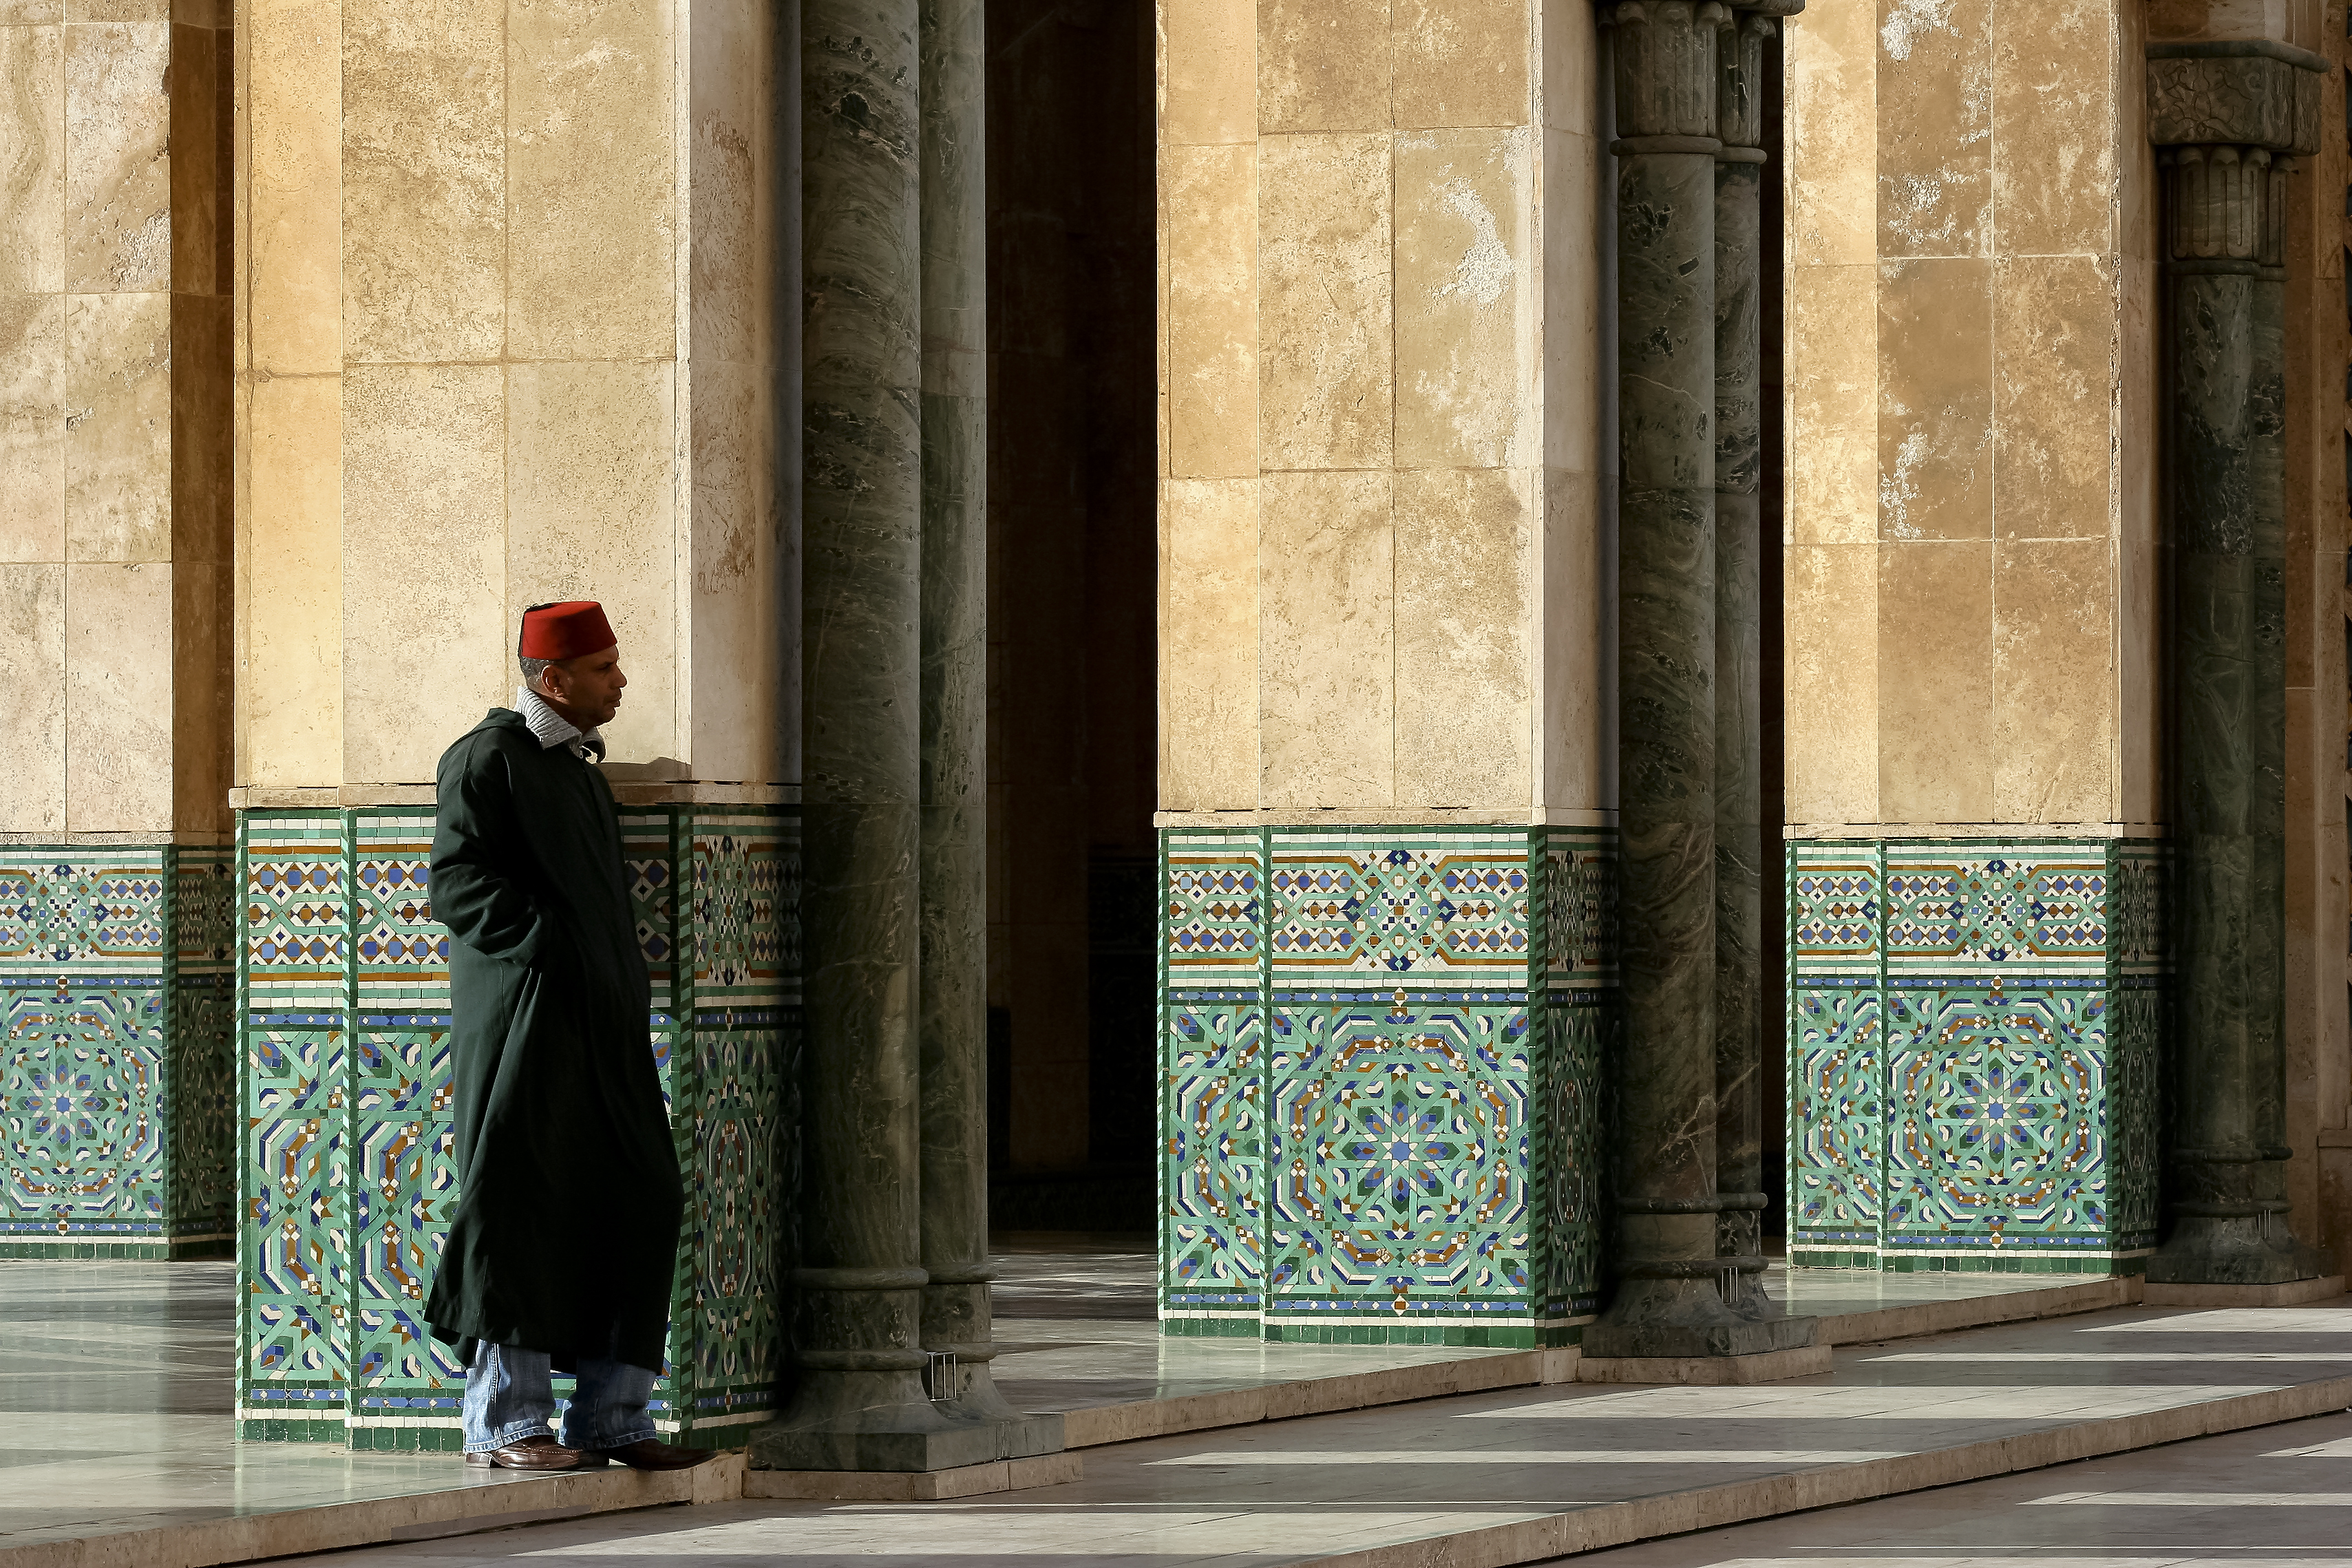 Lone Man in Mosque